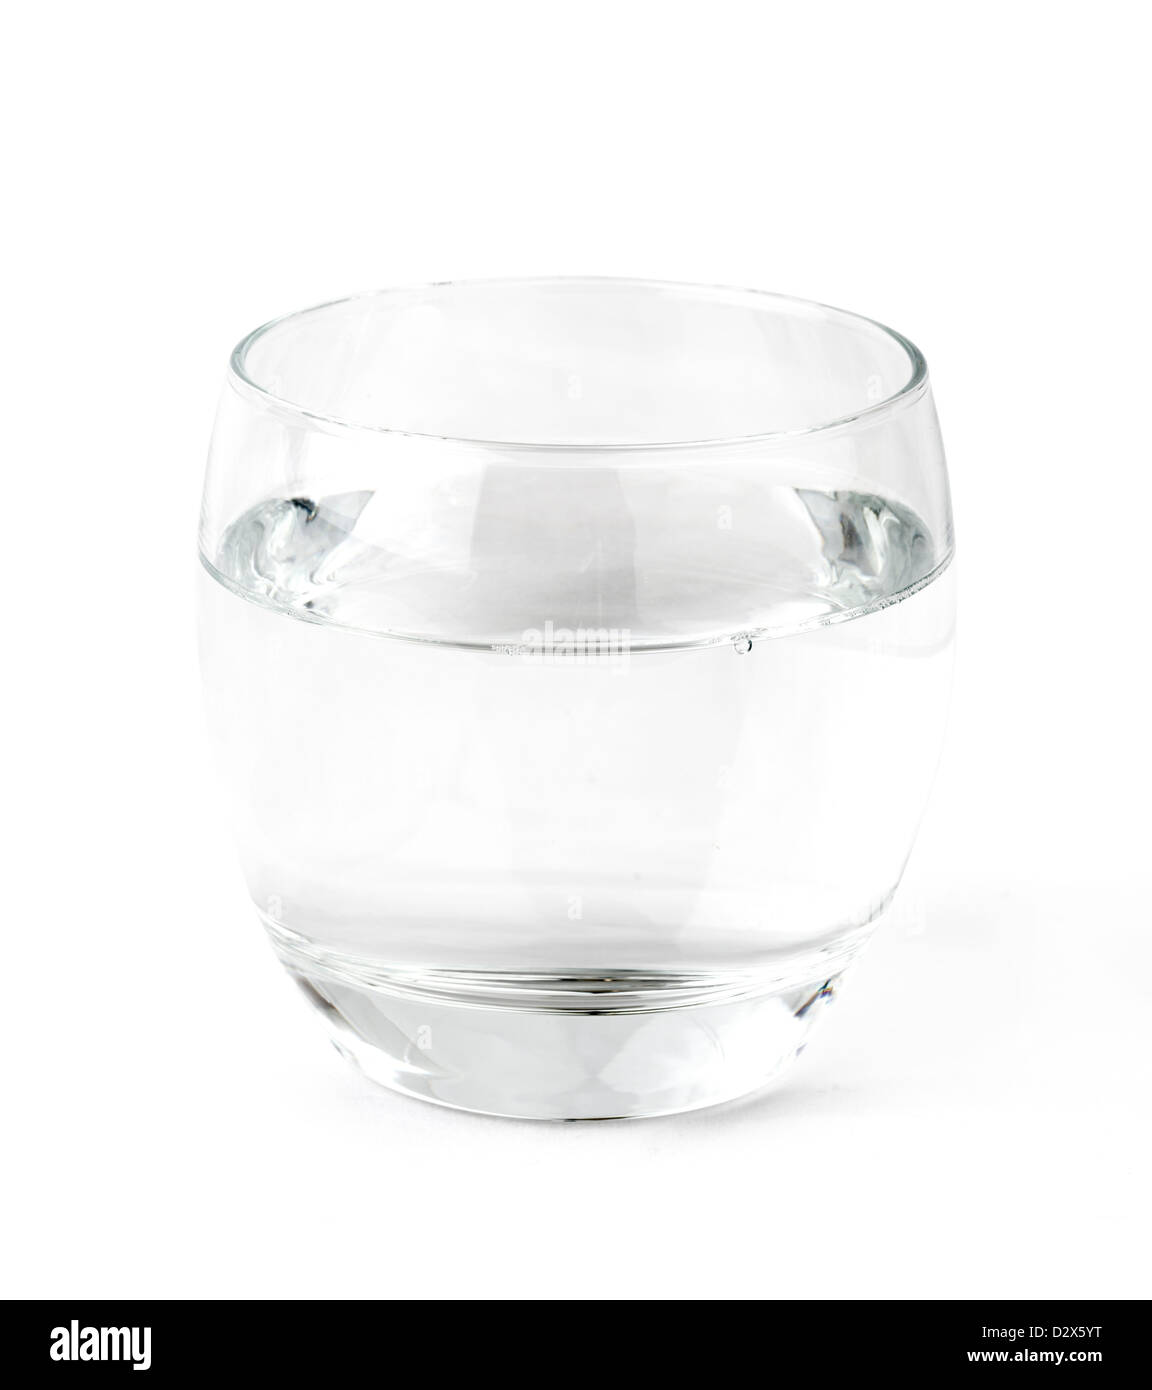 Verre d'eau Photo Stock